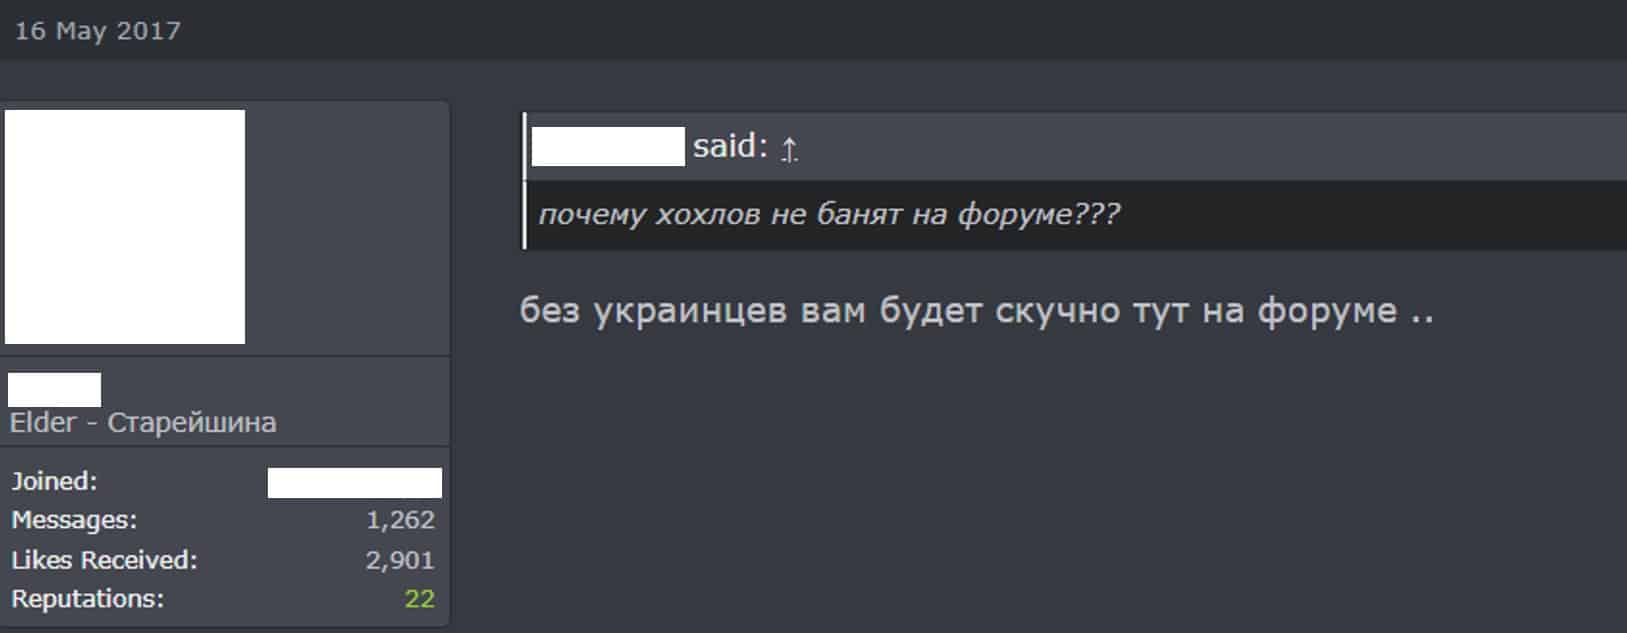 """A Ukrainian user responds to a Russian user who asked, """"why don't they ban kholkhols from the forum?"""""""